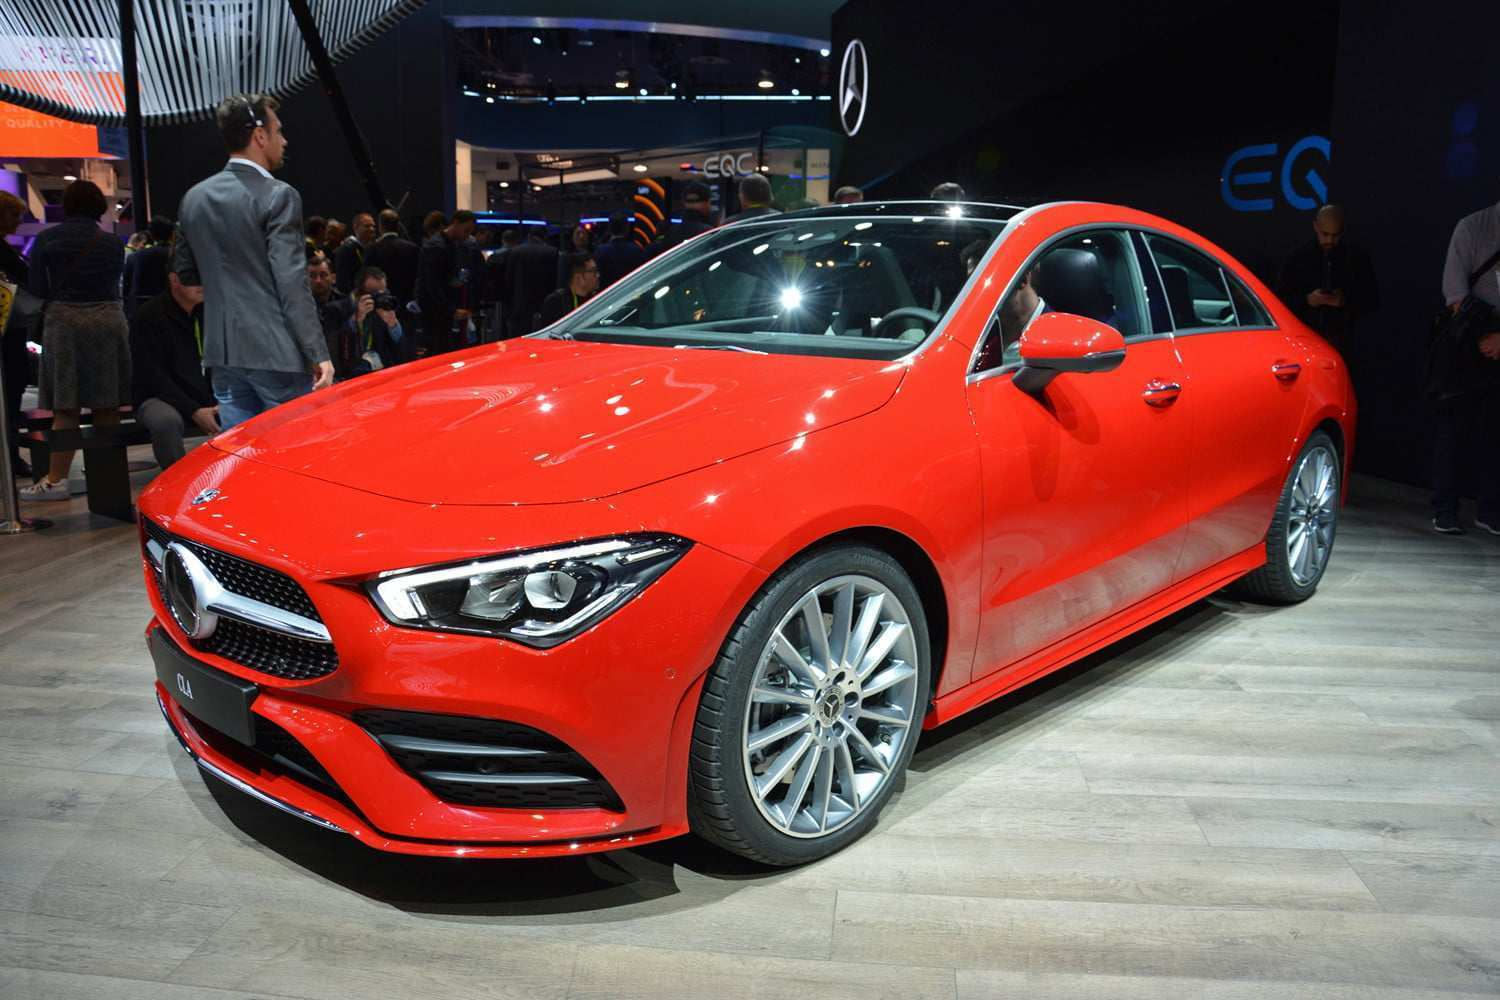 65 All New New Cla Mercedes 2020 Reviews with New Cla Mercedes 2020